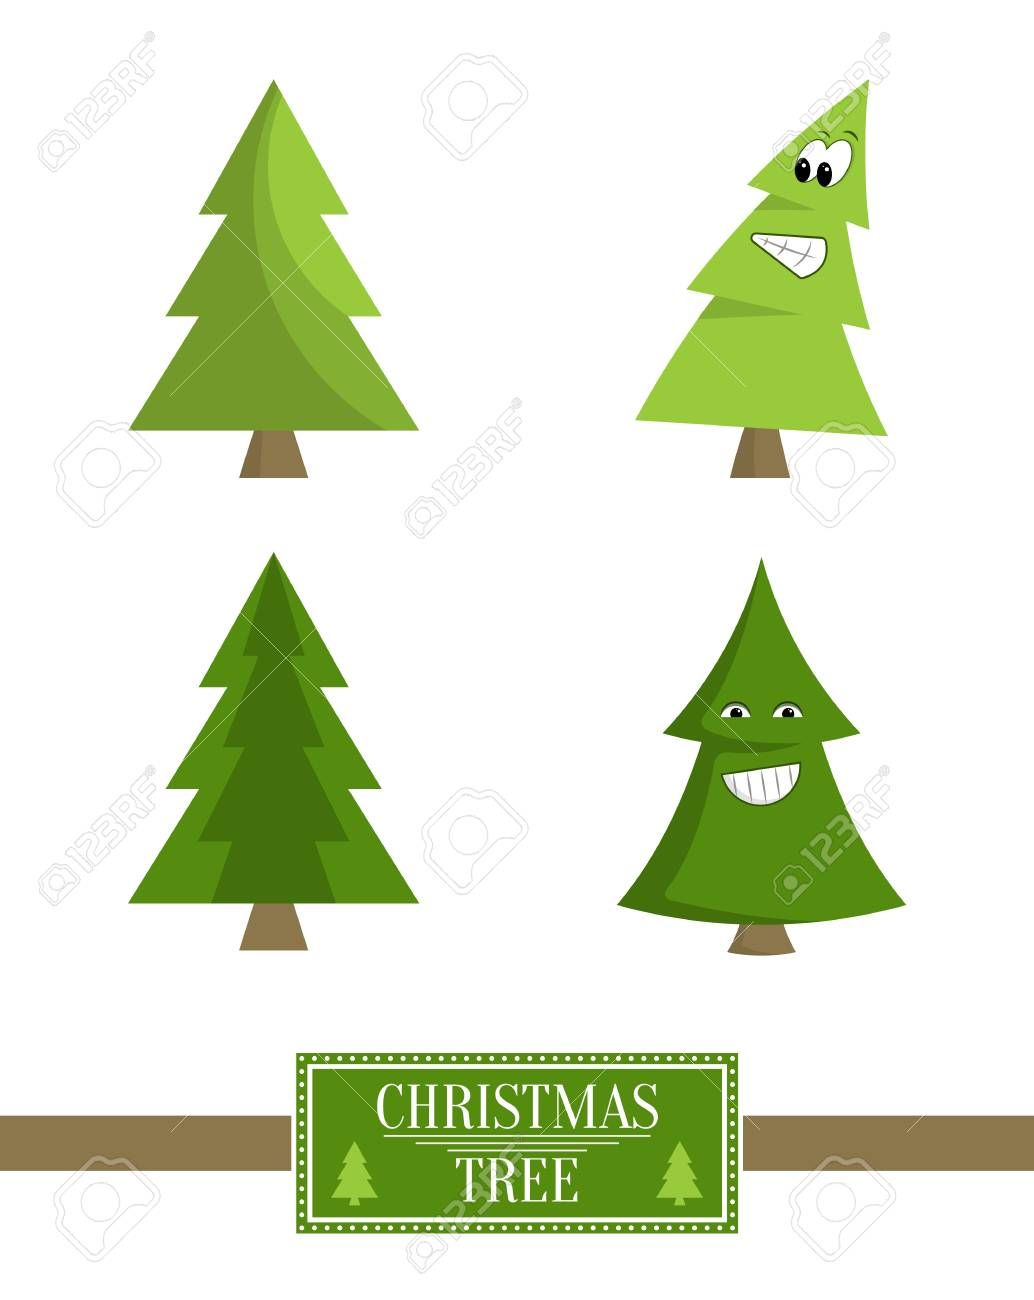 Christmas Tree Sign Board Collection Of Spruce Icons With Eyes And Mouth Emoji Pines Vector Illustration Pro Graphic Design Art Tree Signs Vector Illustration